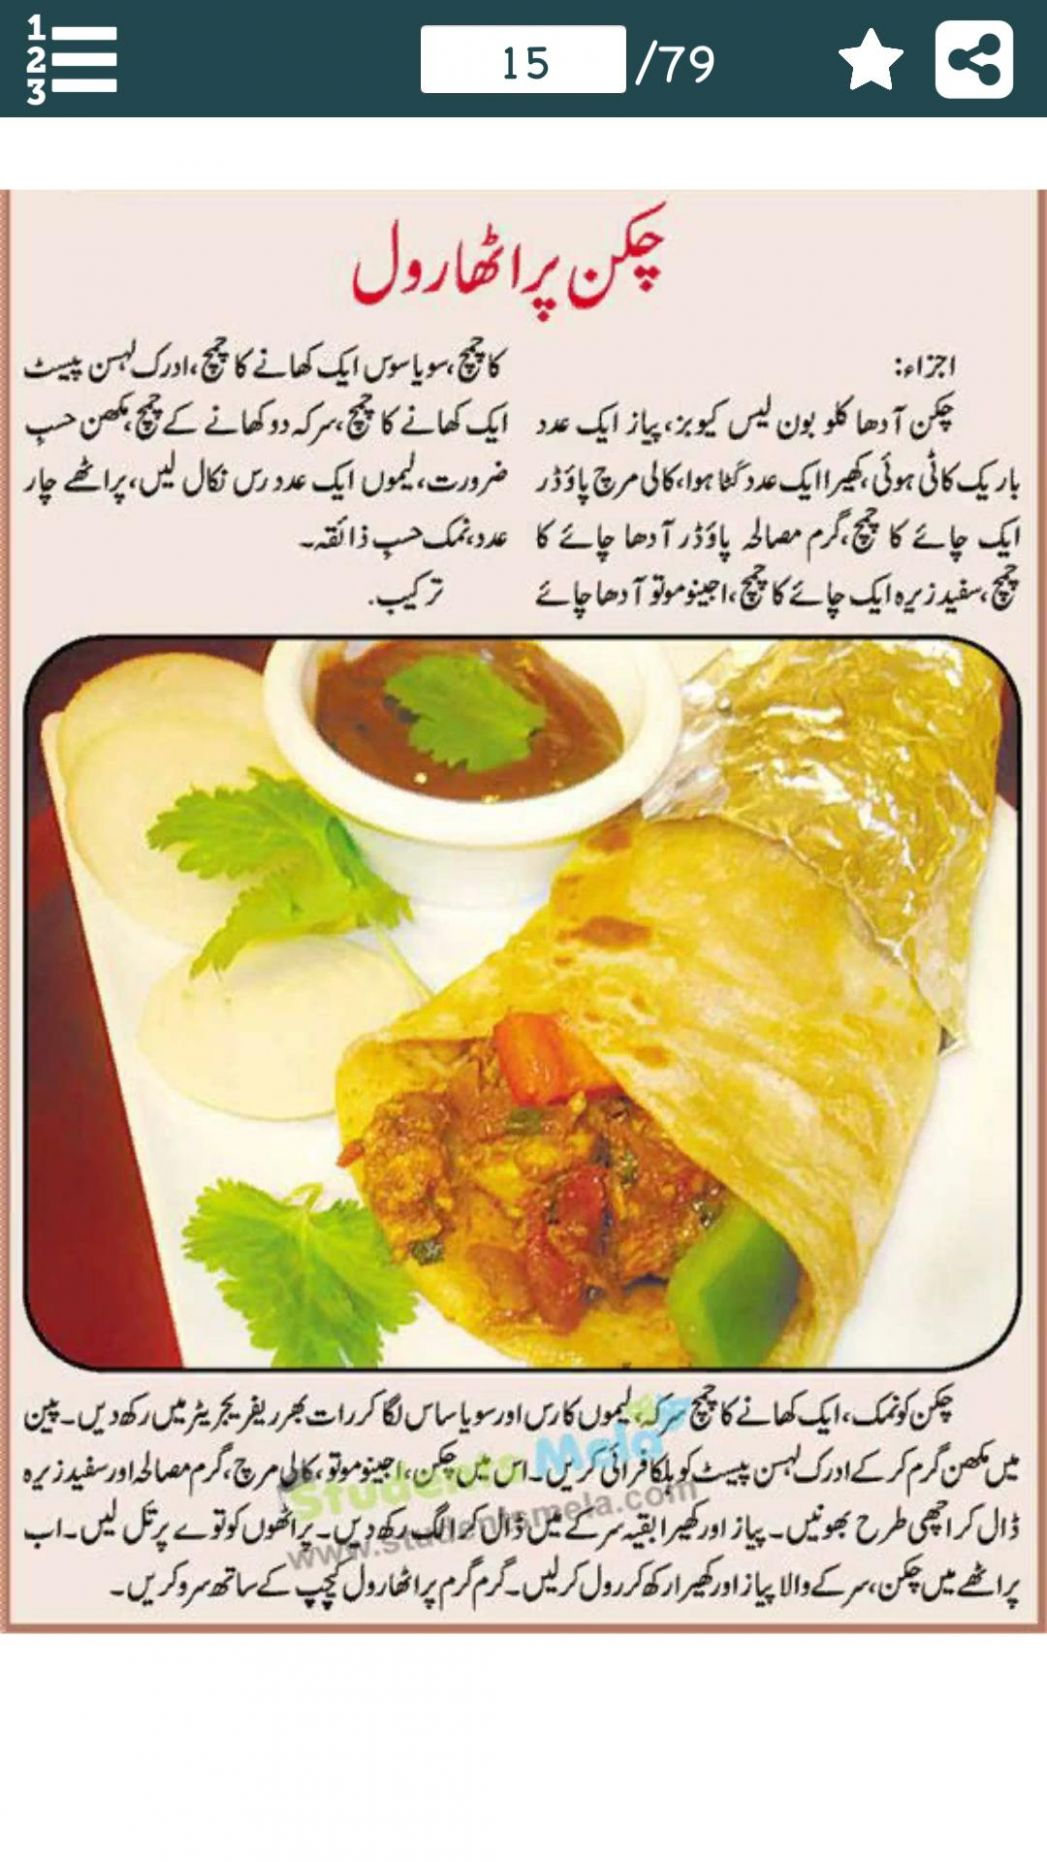 Pakistani Easy Recipes in URDU for Android - APK Download - Easy Recipes Pakistani